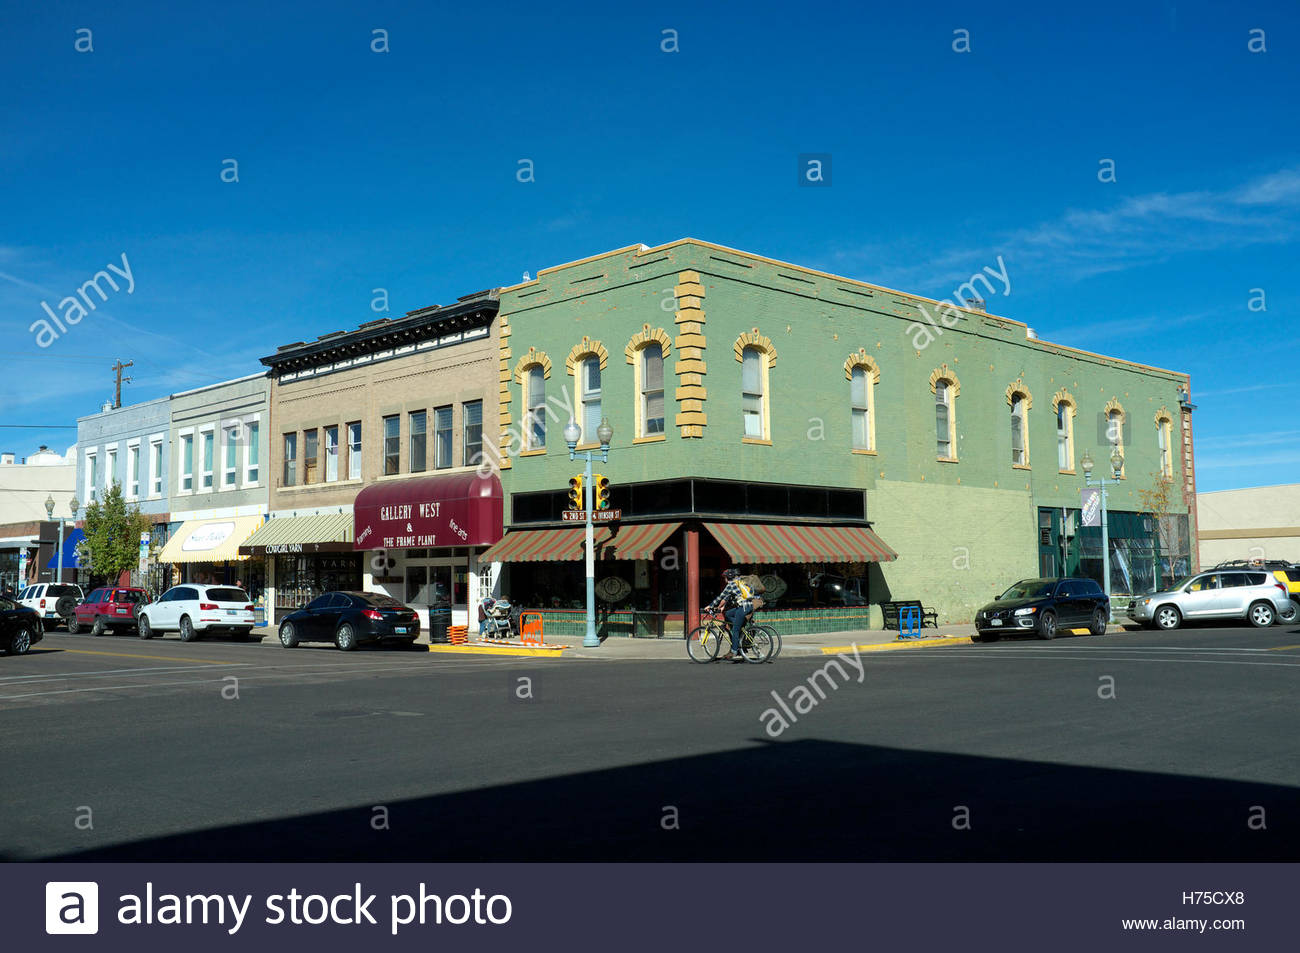 View in the historic downtown area of Laramie, Albany County, in Wyoming, USA. Stock Photo